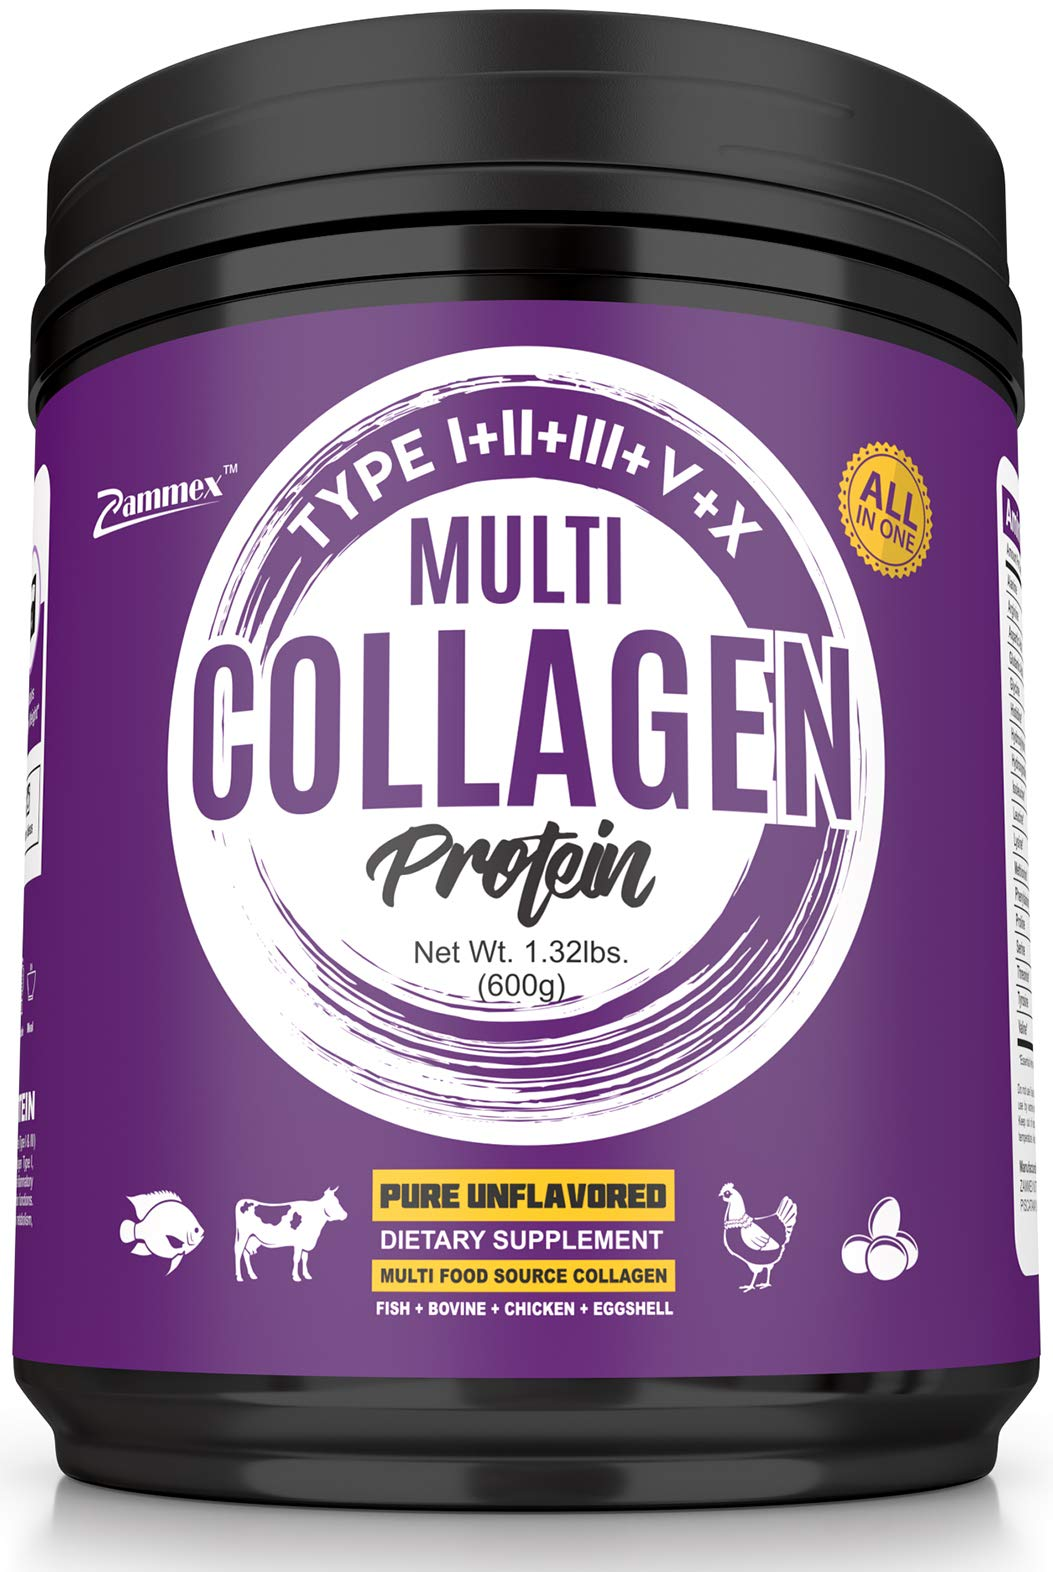 Multi-Collagen Protein Powder 21oz Best Value - High-Quality Blend of Grass-Fed Beef, Wild Fish, Patent Formula-TendoGuardTM-Chicken, Eggshell Collagen Peptides, All Natural Type I, II, III, V and X. by Zammex